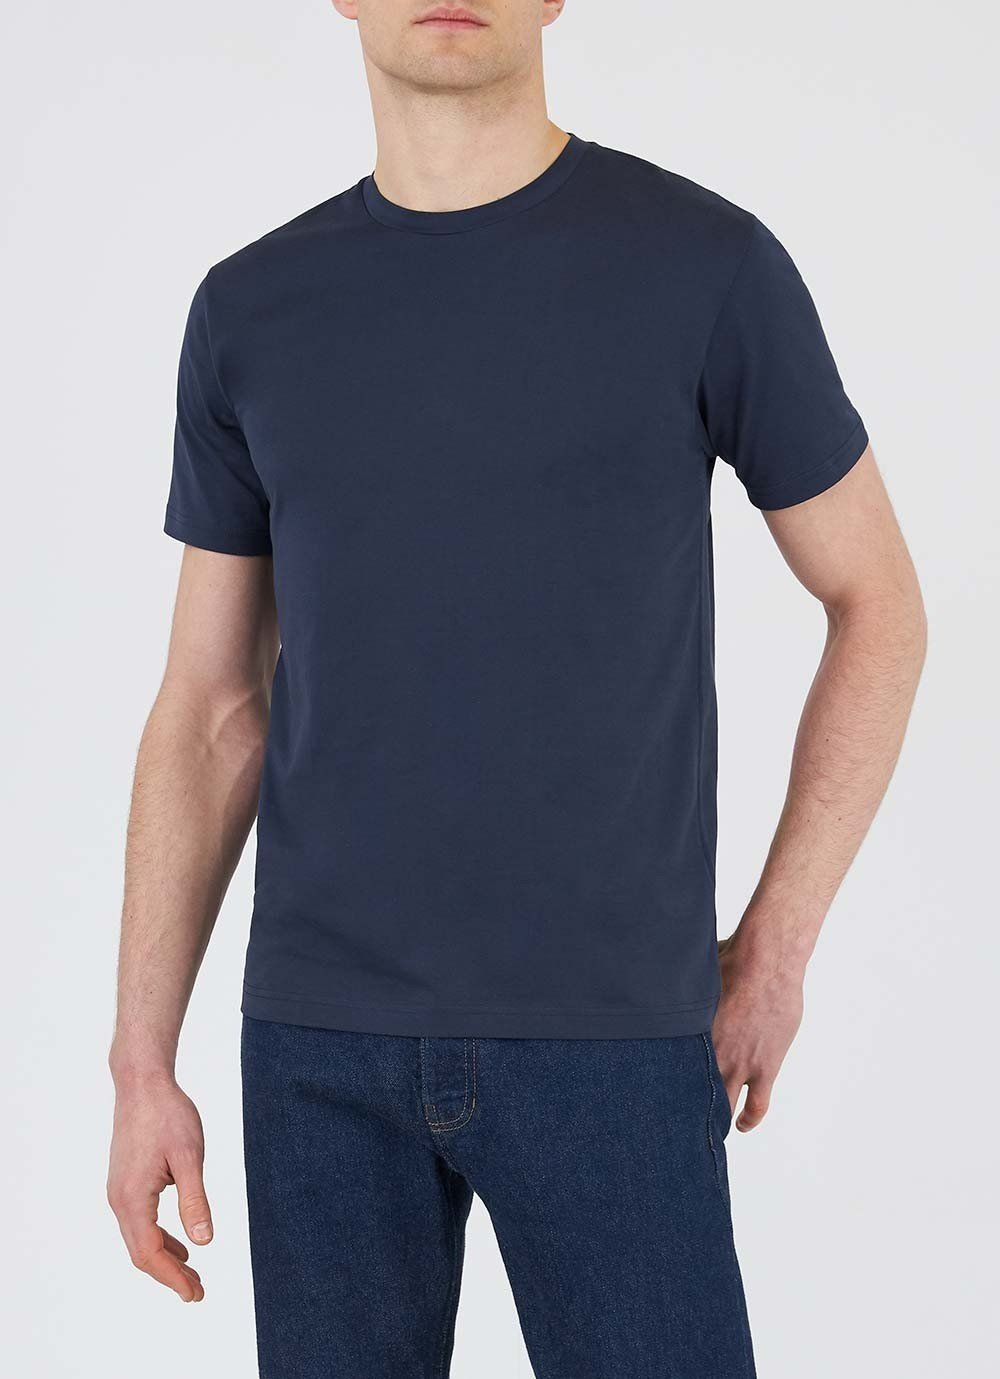 Sunspel-Short-Sleeve-Classic-Crew-Neck-T-Shirt-Navy